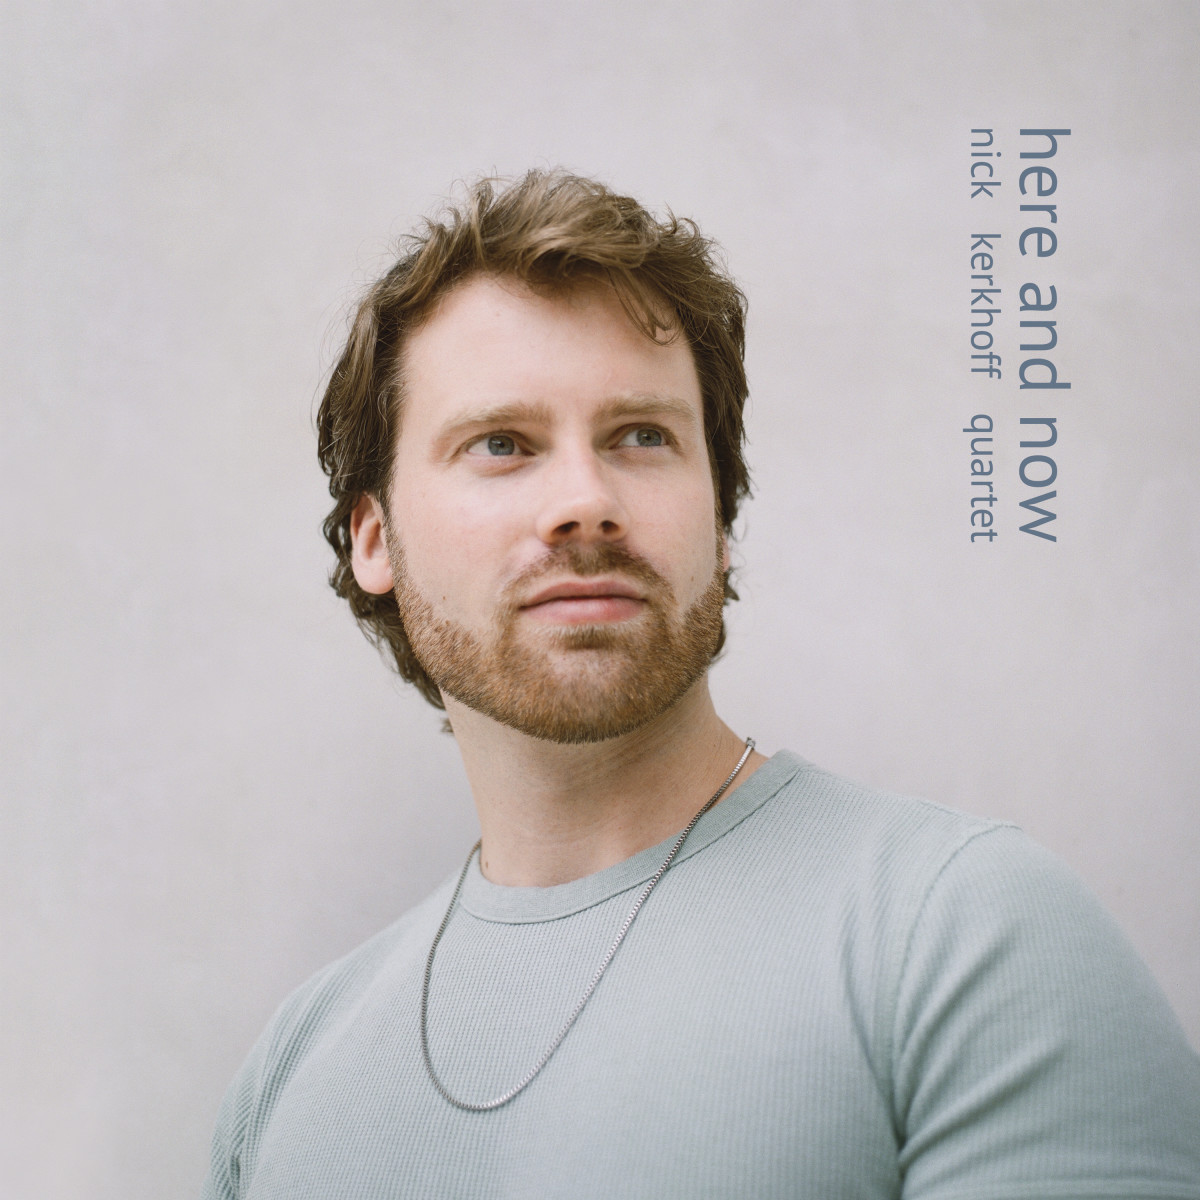 Album cover Here and Now 72dpi - Joel Thum